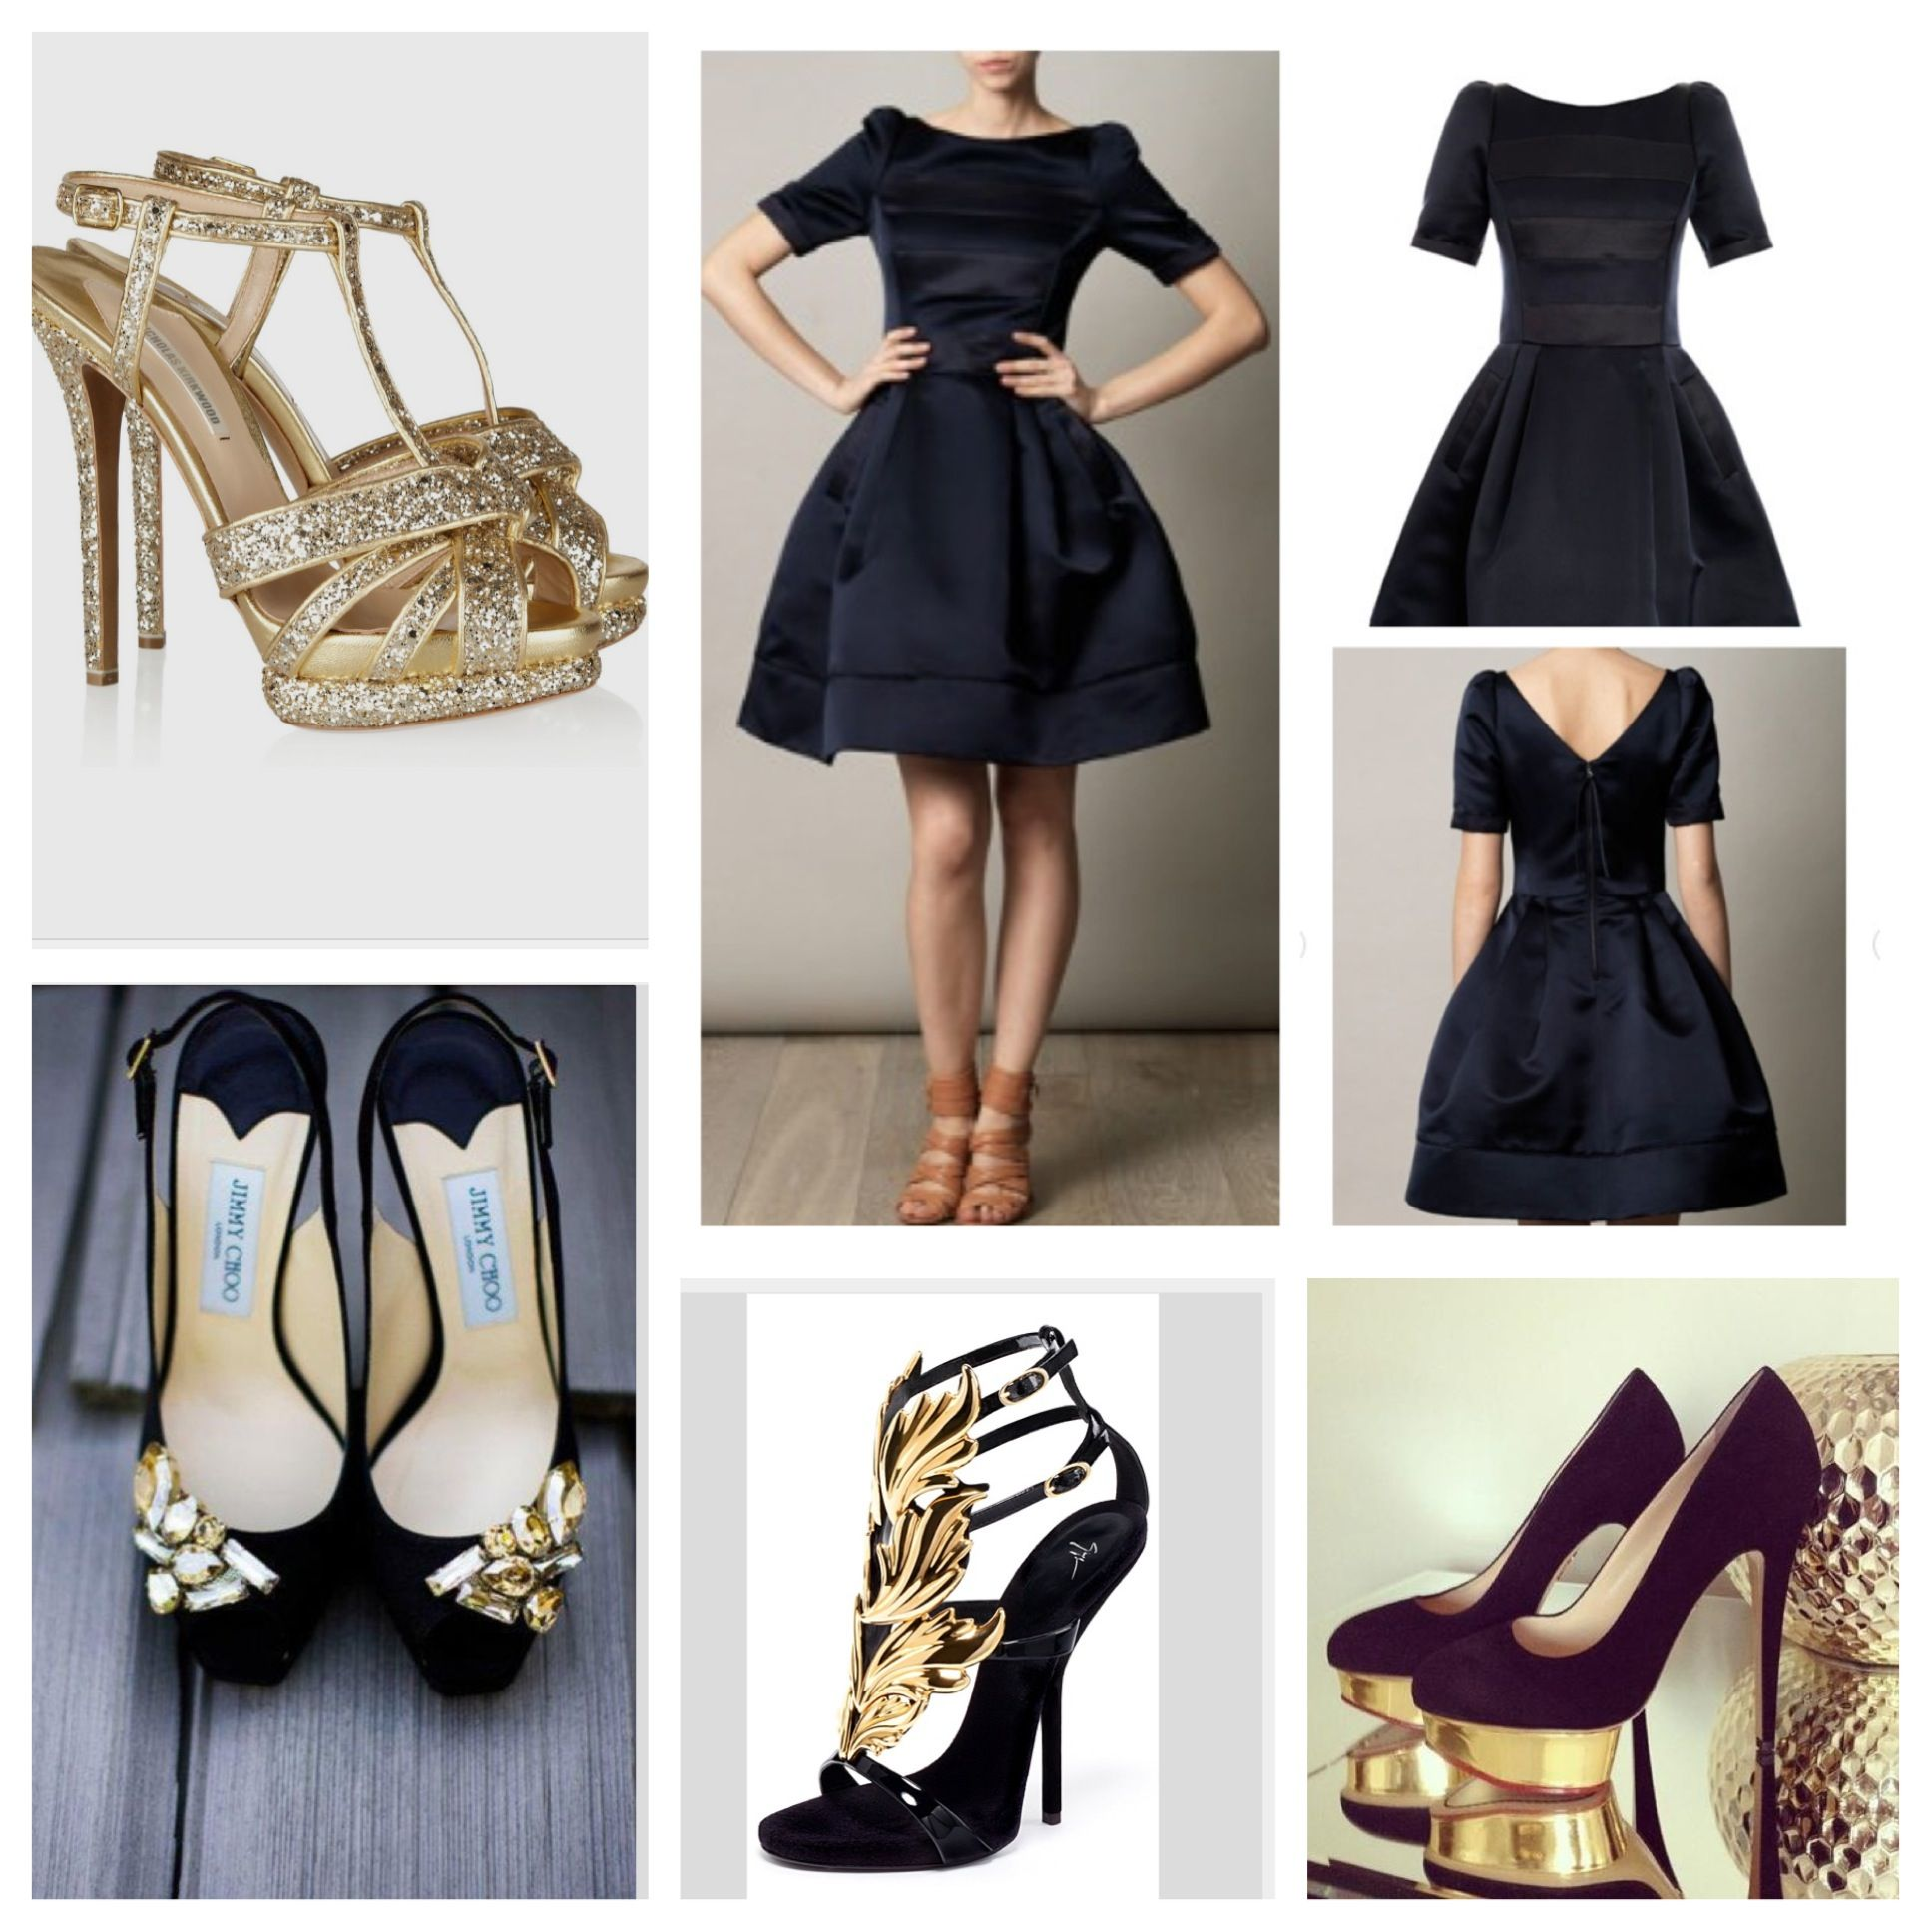 Pin By The Coordinated Bride Wedding On Black Wedding Inspiration Black And Gold Shoes Gold Shoes Gold Shoes Outfit